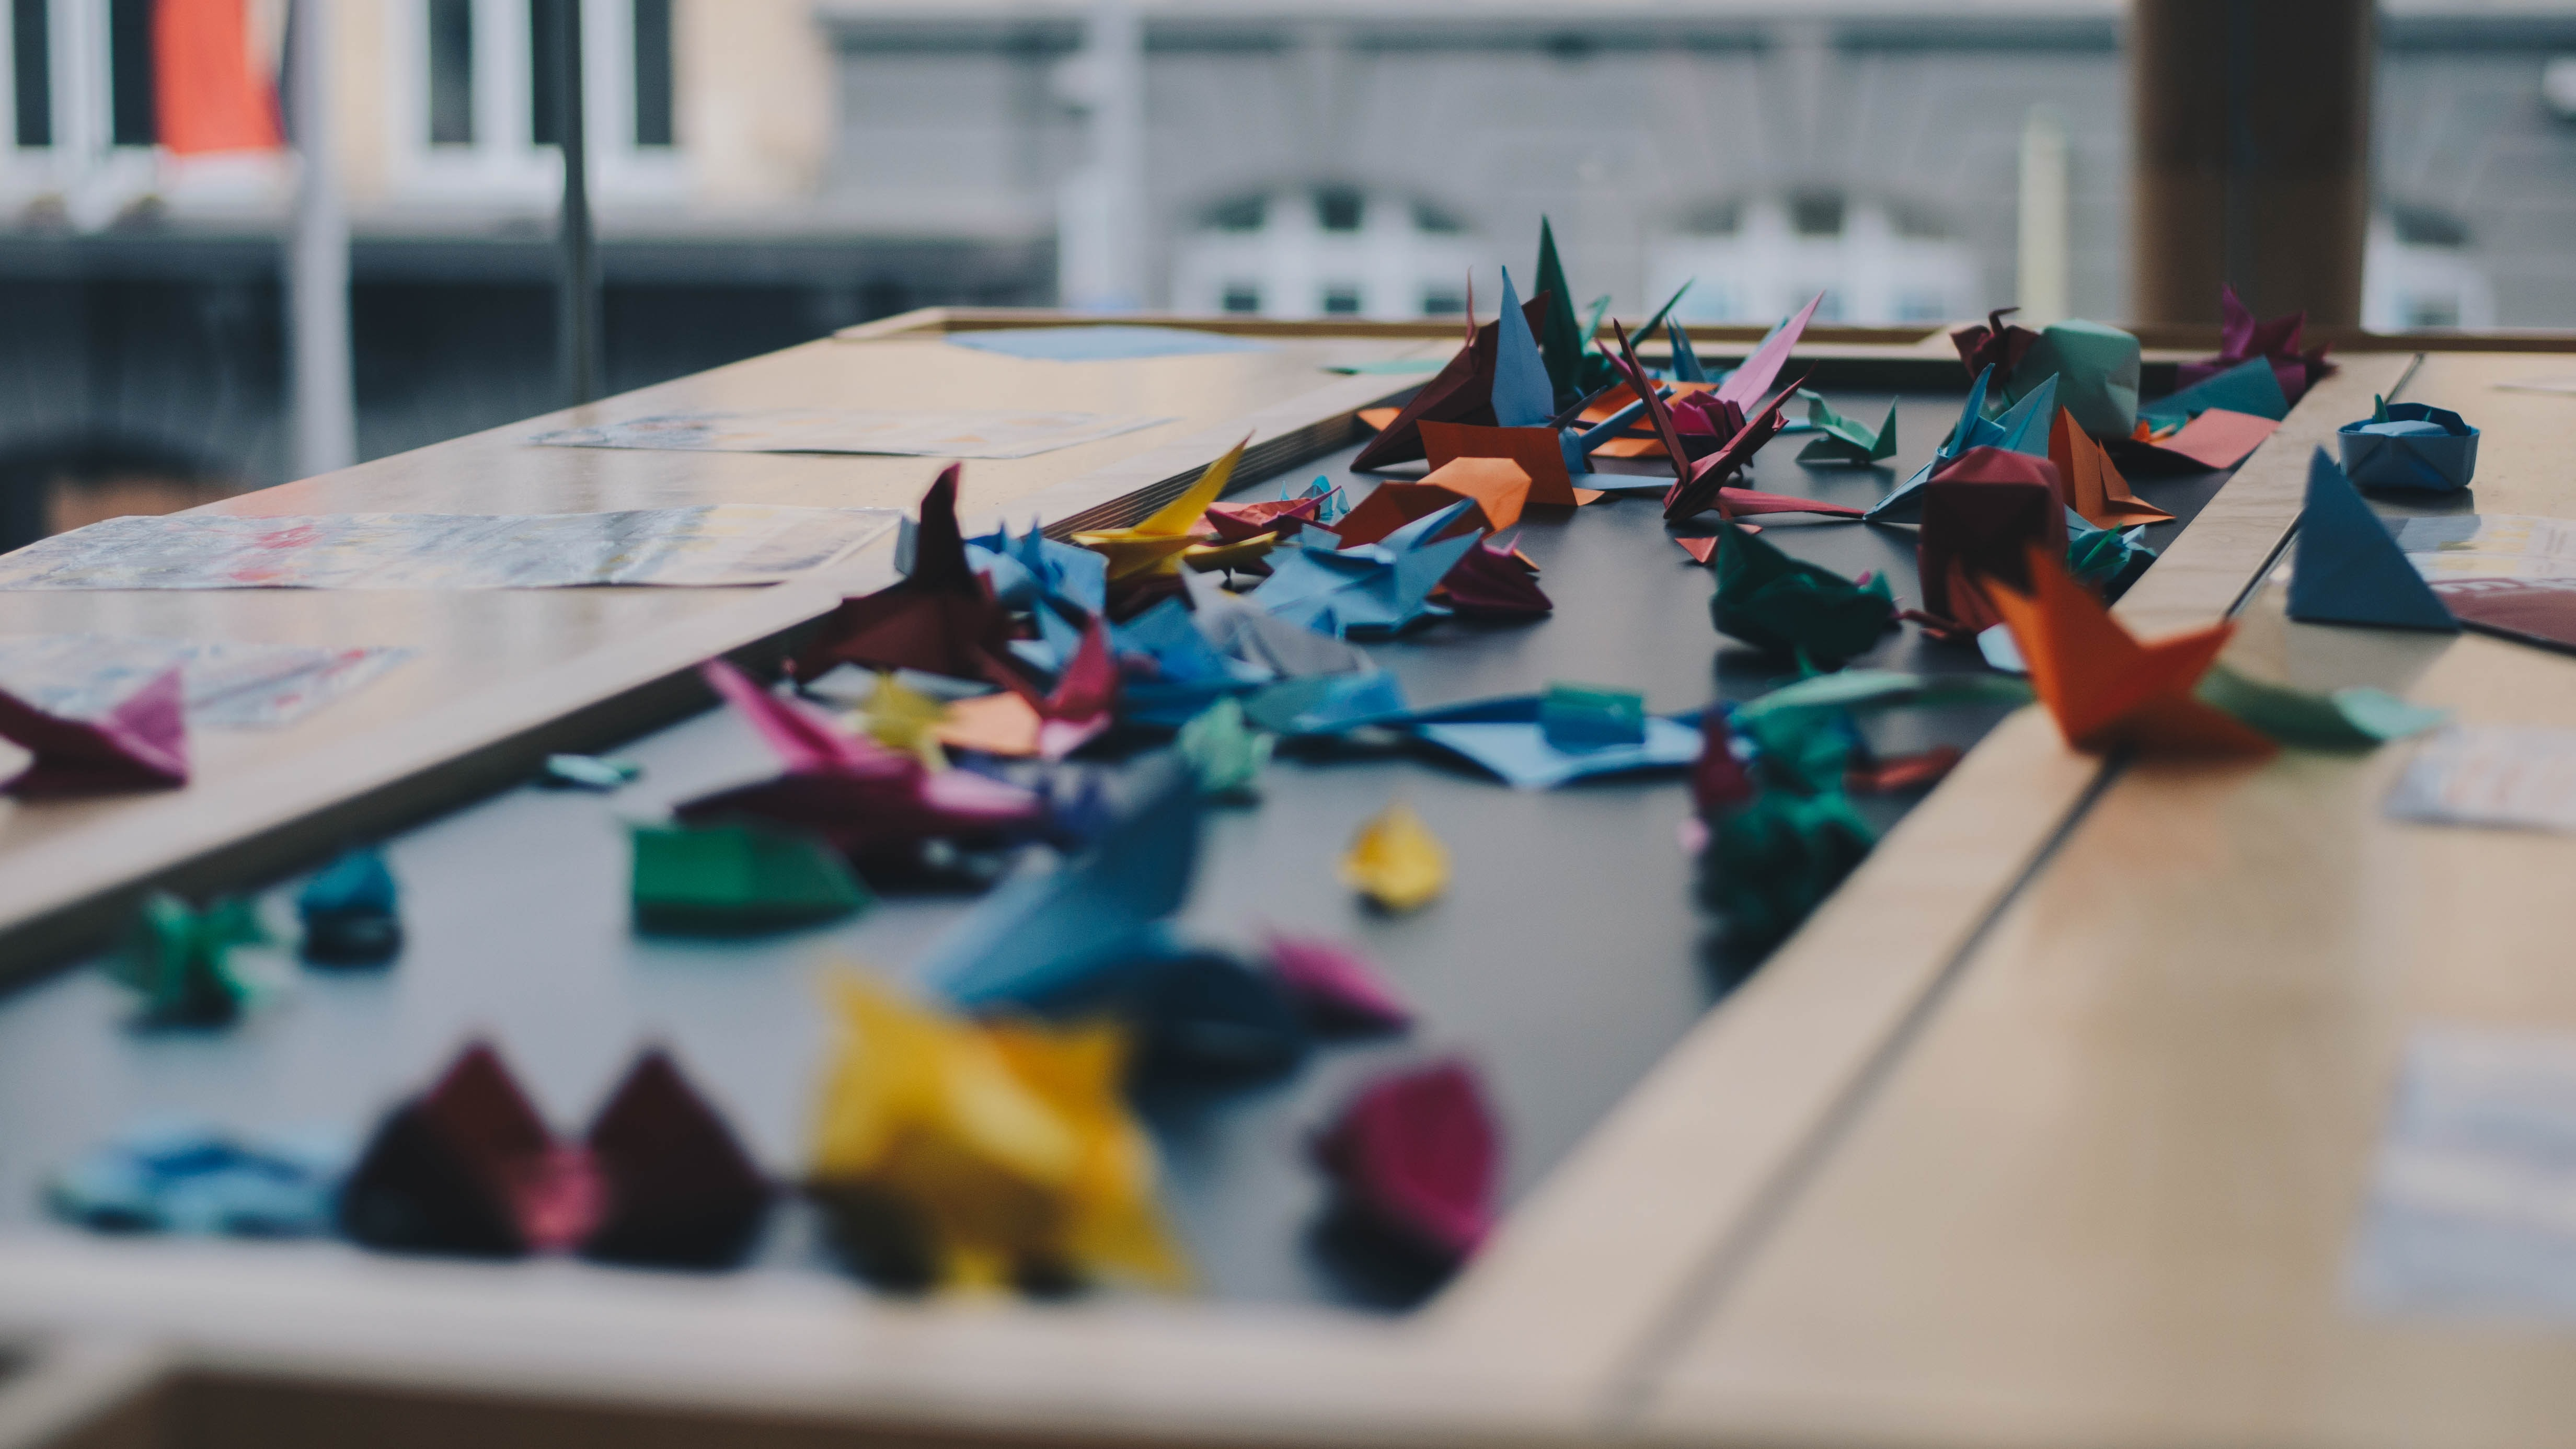 A large number of colorful origami cranes scattered across a table